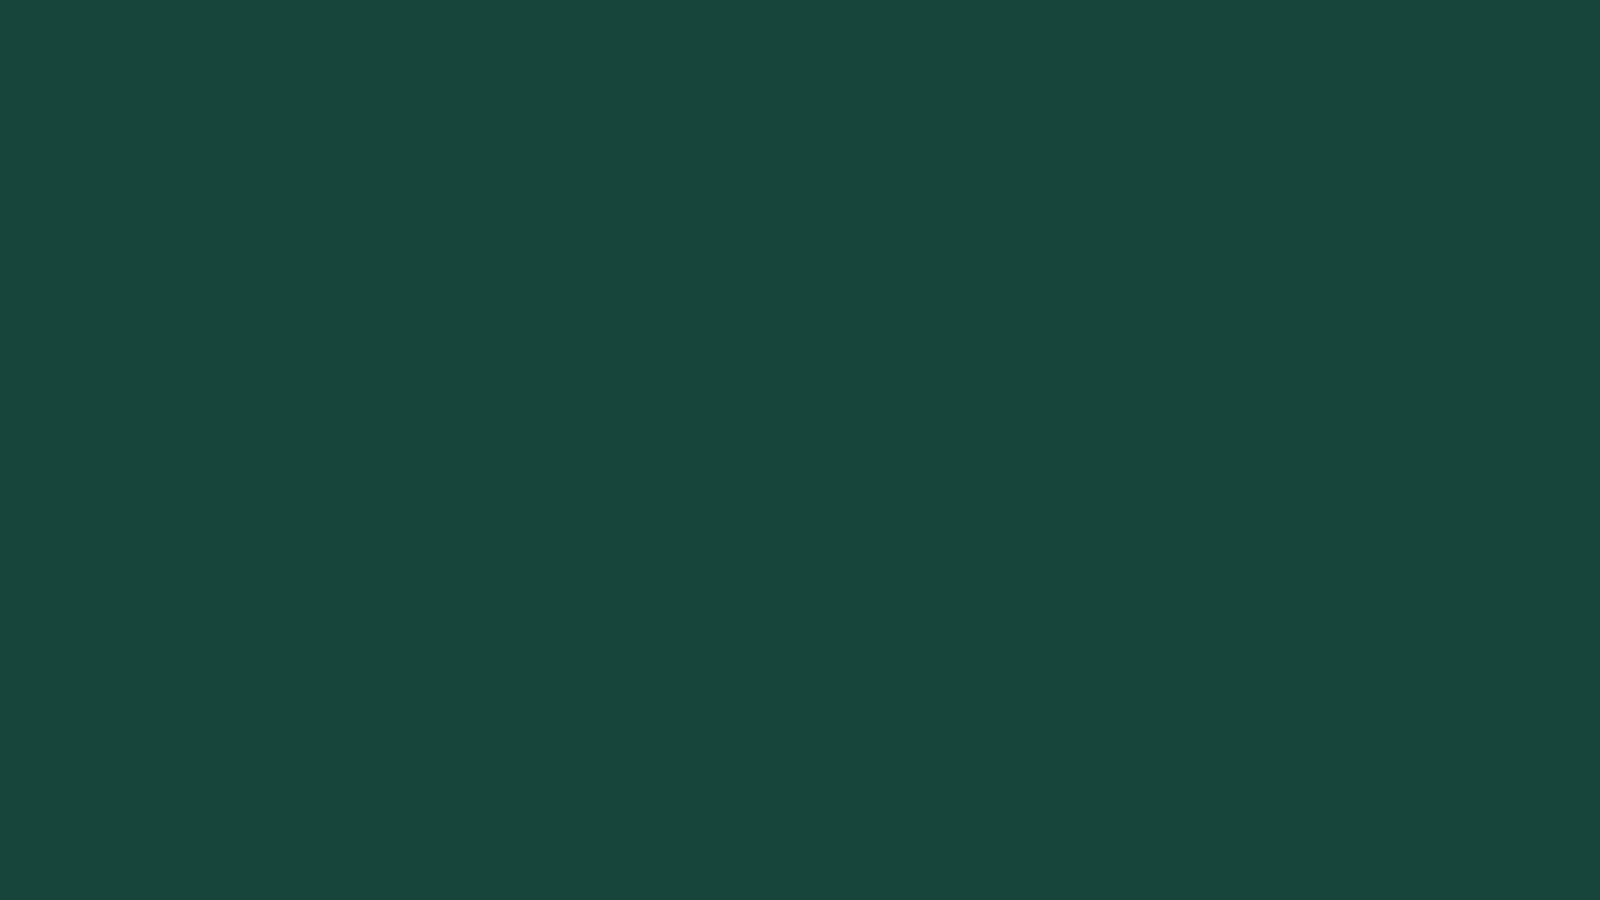 1600x900 MSU Green Solid Color Background